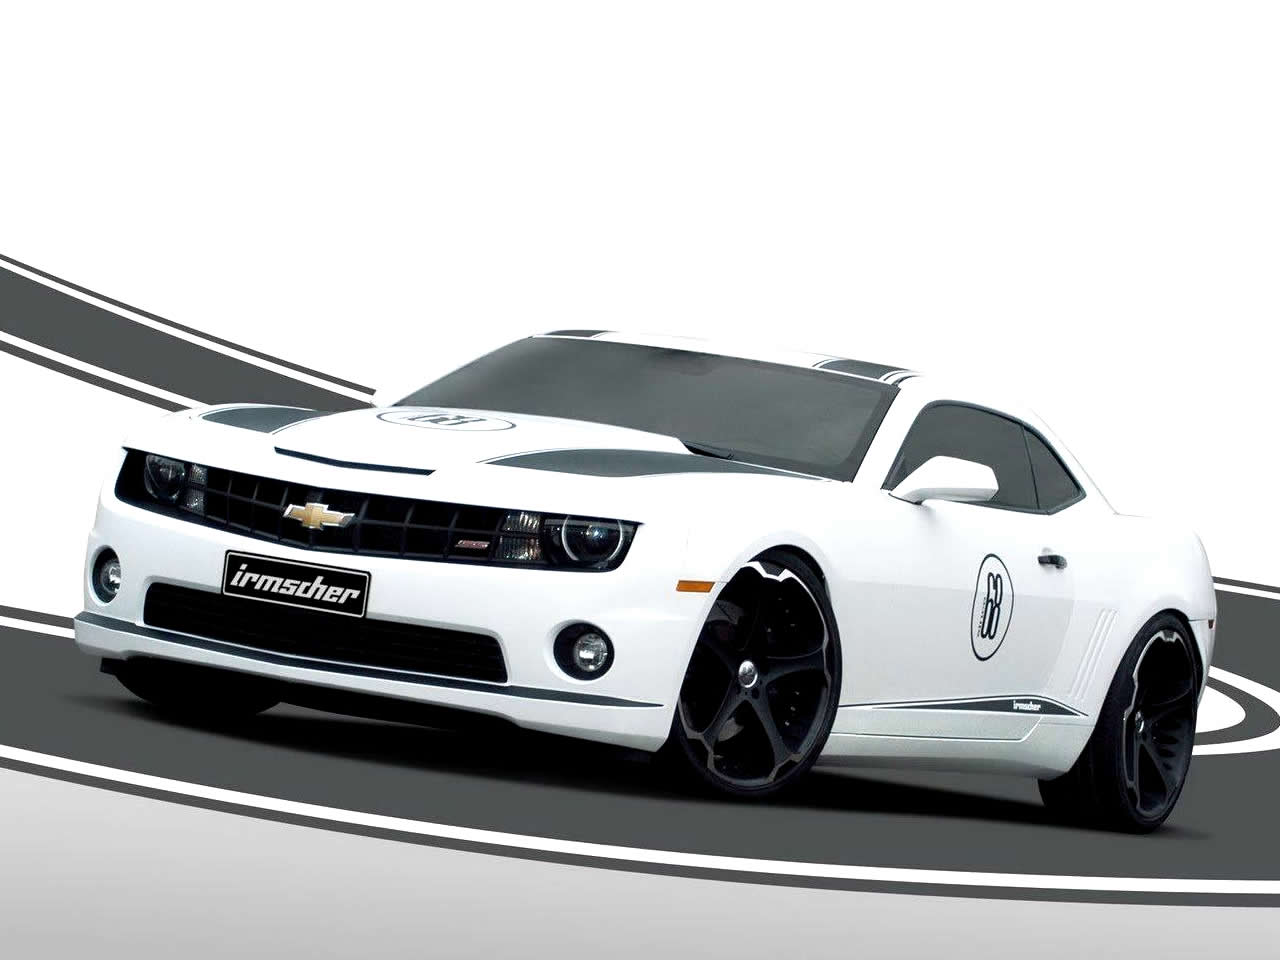 chevrolet camaro 2011 tuning wallpapers carros. Black Bedroom Furniture Sets. Home Design Ideas